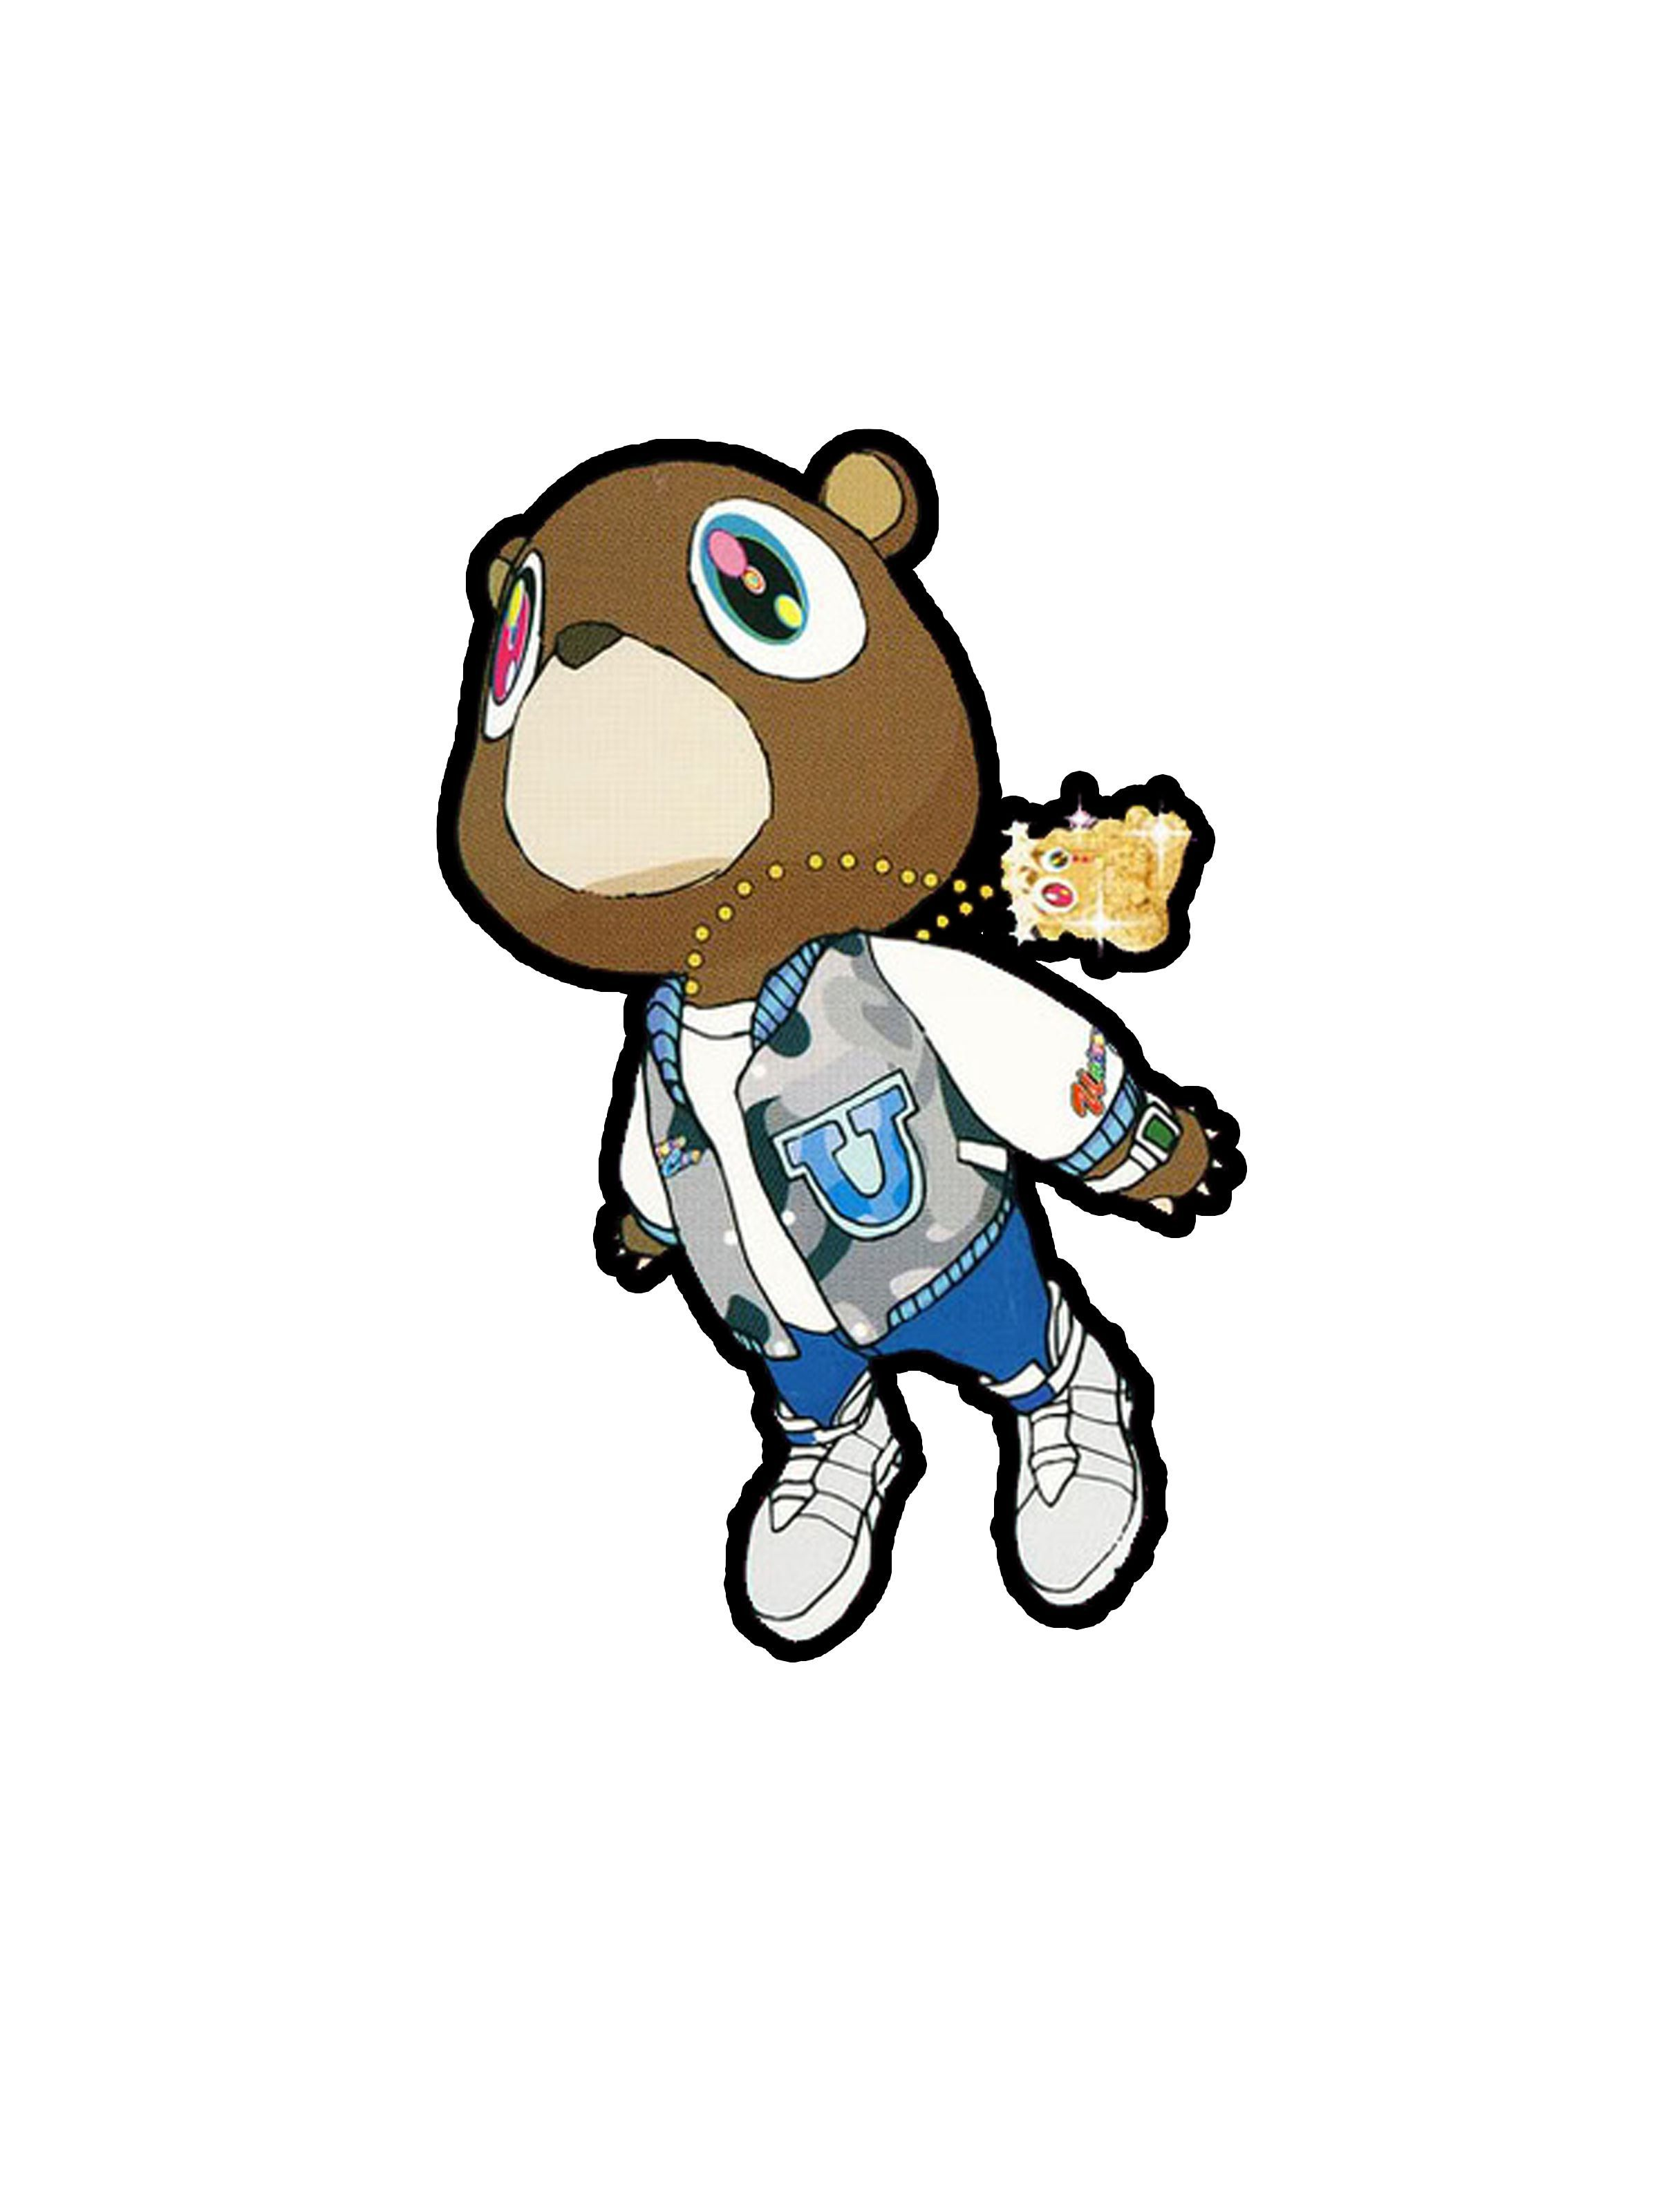 Kanye West Graduation Bear In 2020 Kanye West Graduation Bear Kanye West Wallpaper Graduation Bear